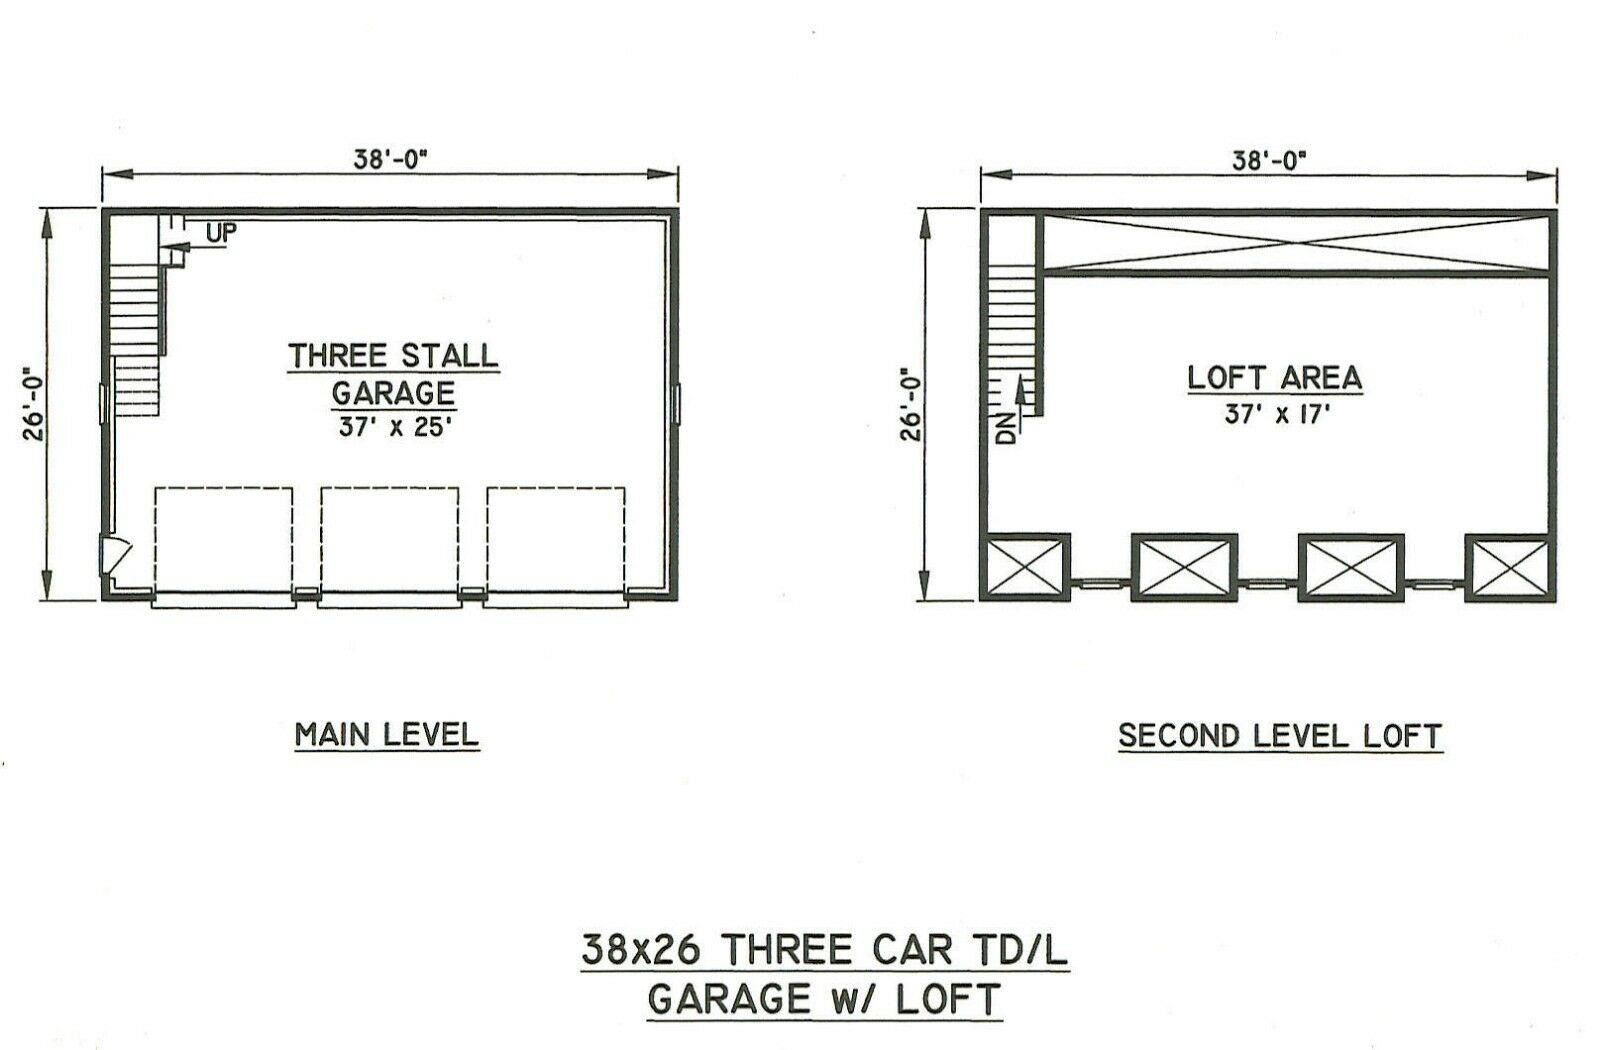 38x26 3 car triple front dormers garage building blueprint Triple car garage house plans